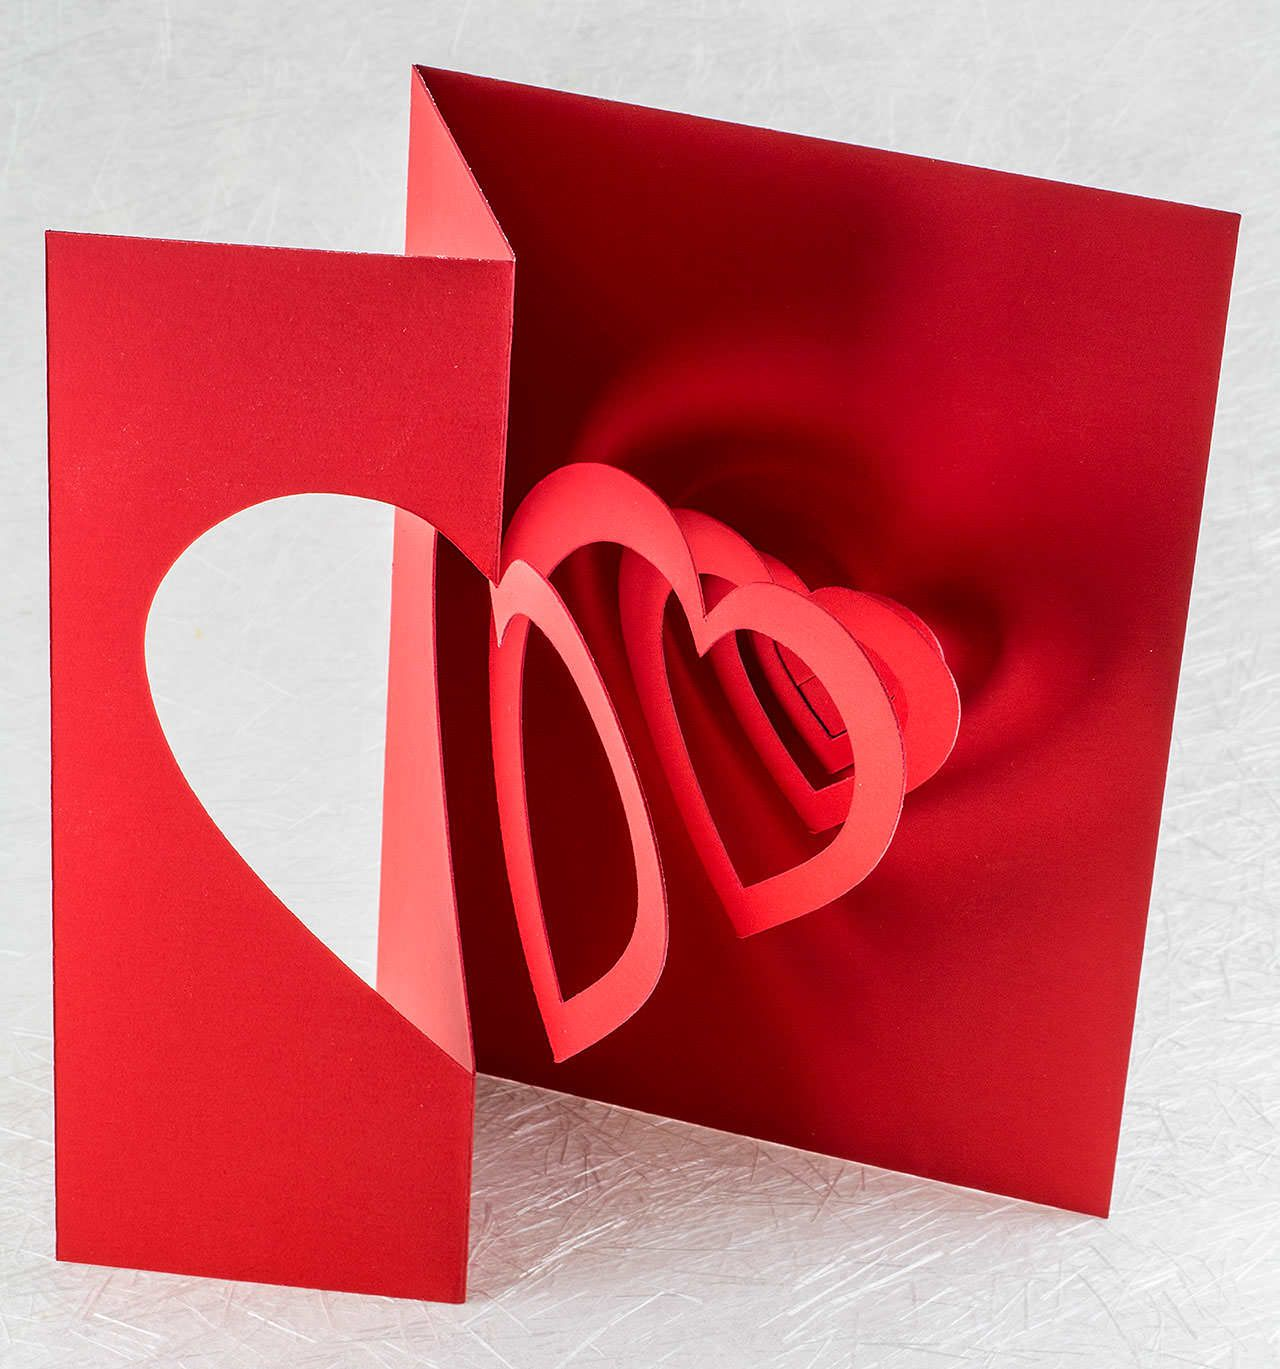 This Deep Red Spiraling Heart Pop Up Card Is The Perfect Elegant Valentine S Day Card For Your P Heart Pop Up Card Pop Up Valentine Cards Diy Valentines Cards